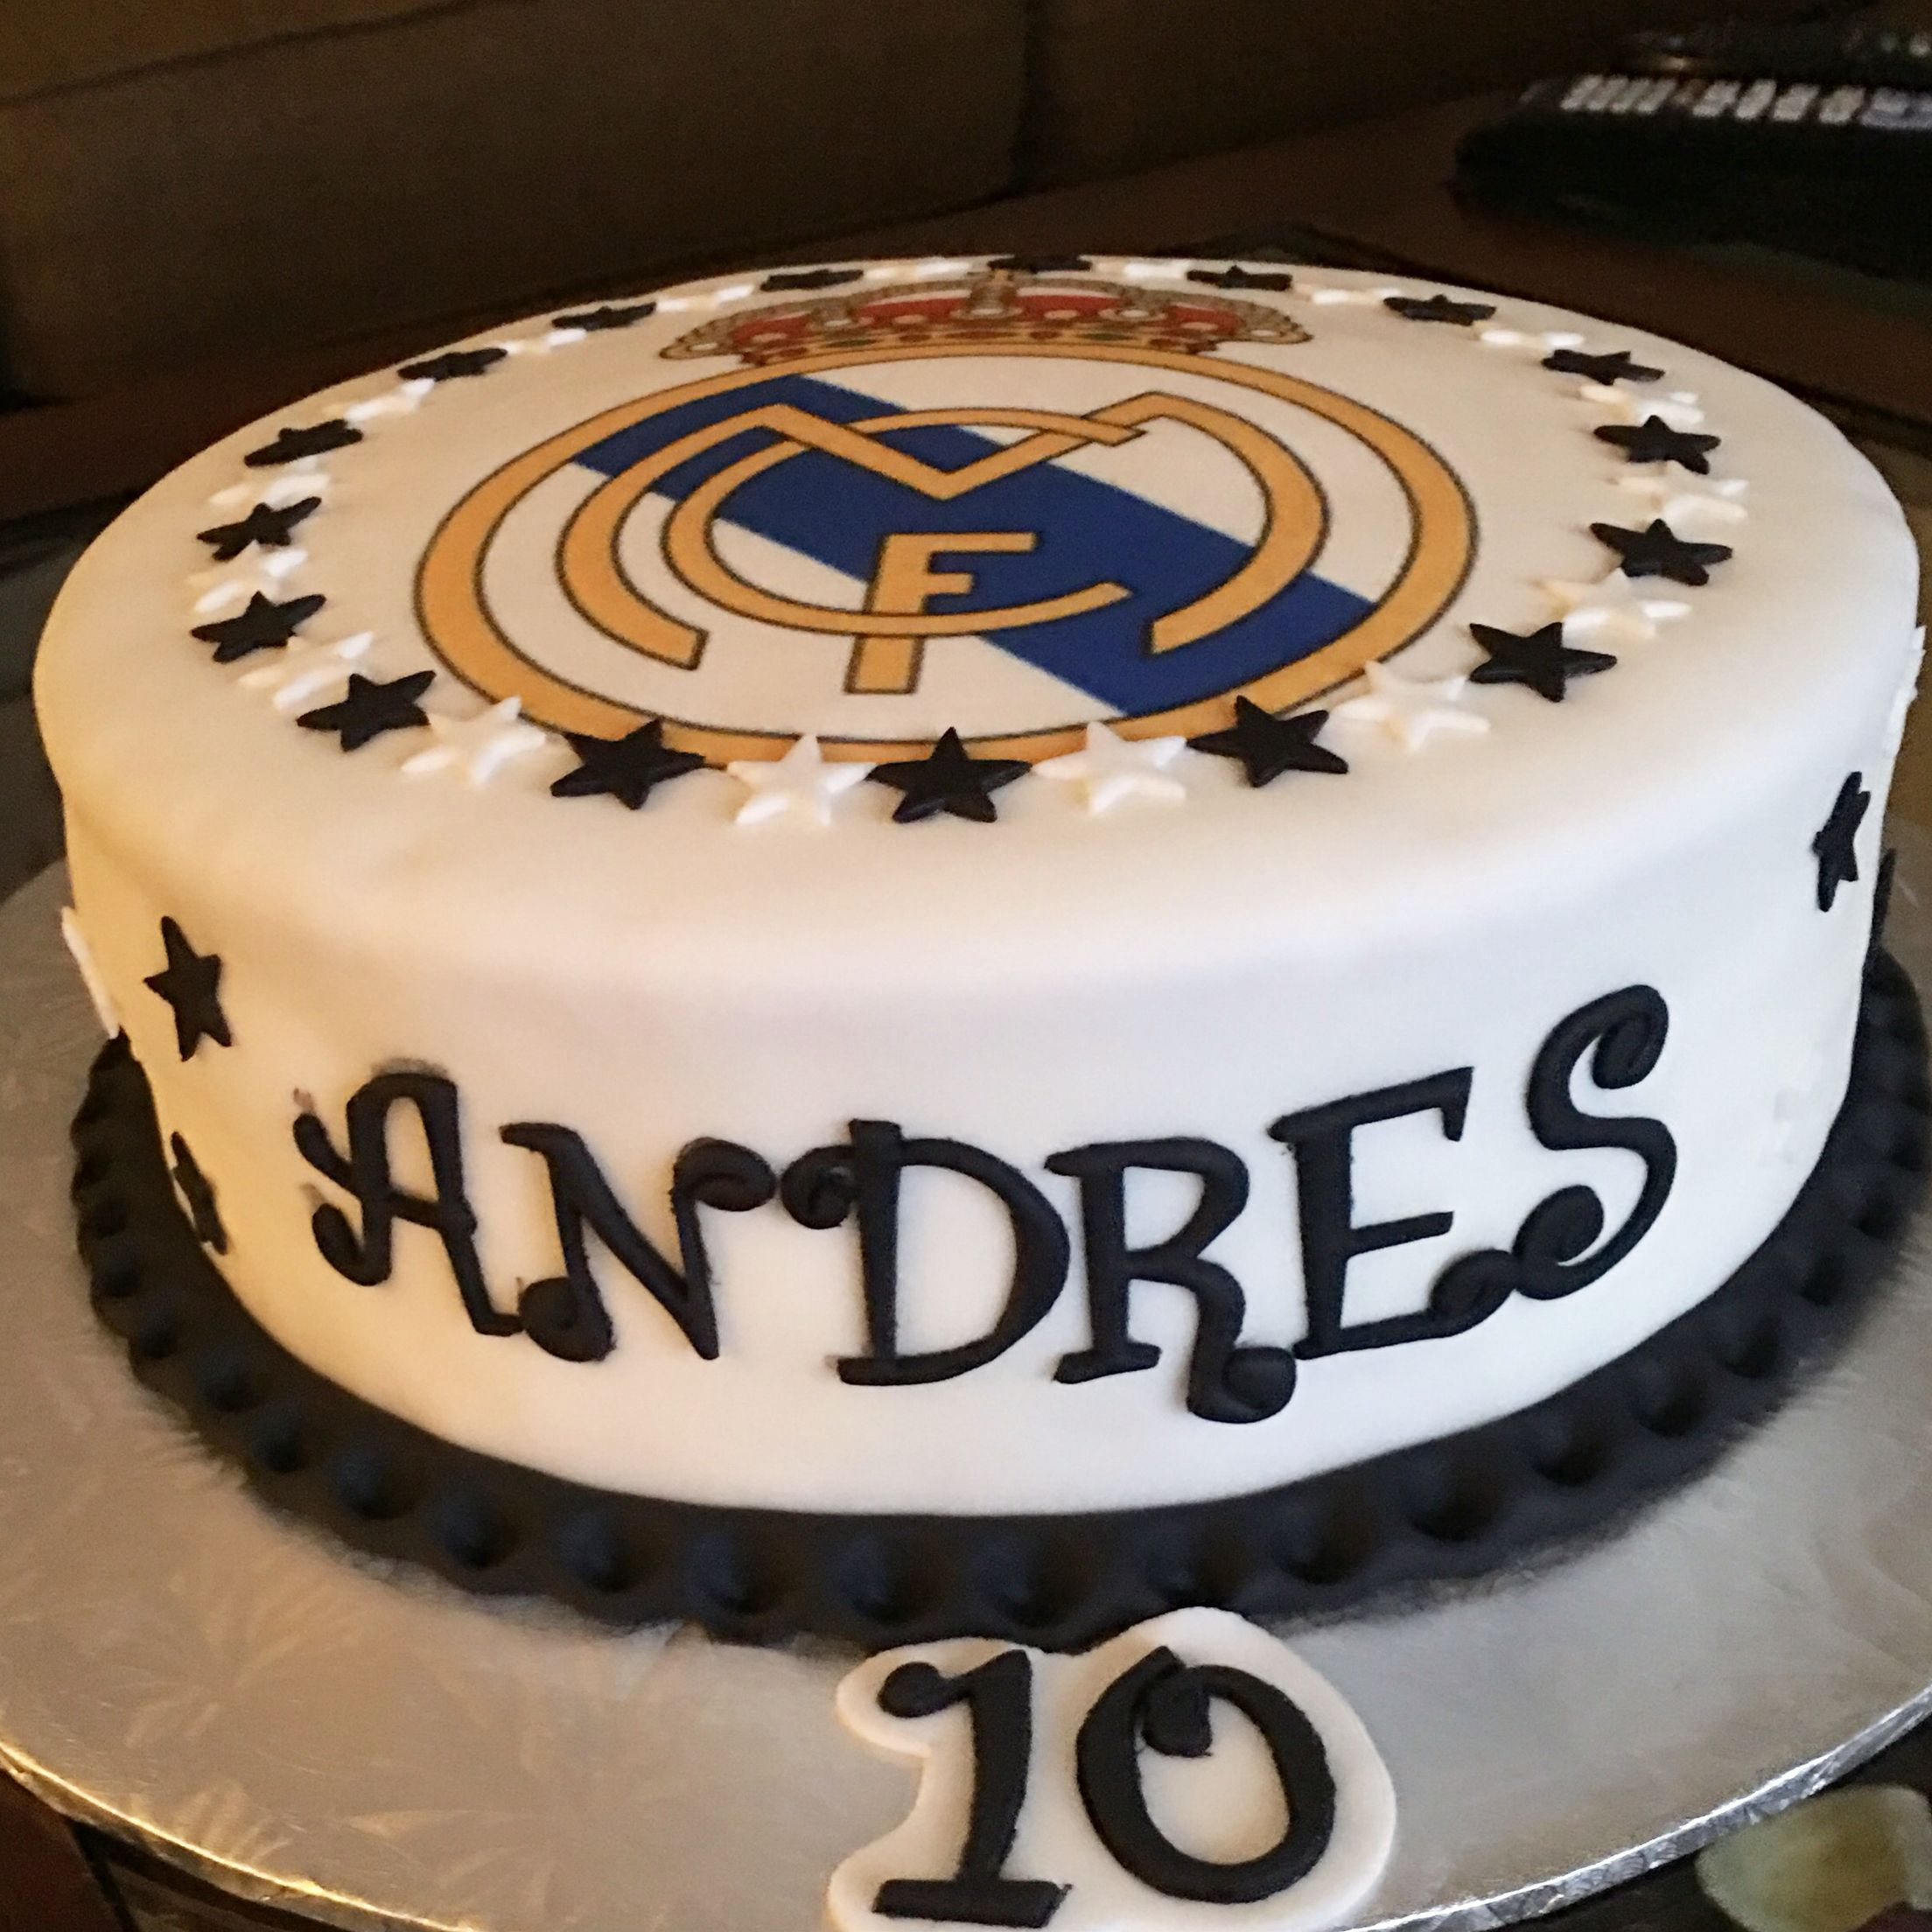 Real Madrid Cake With Images Real Madrid Cake Fondant Cakes Cake